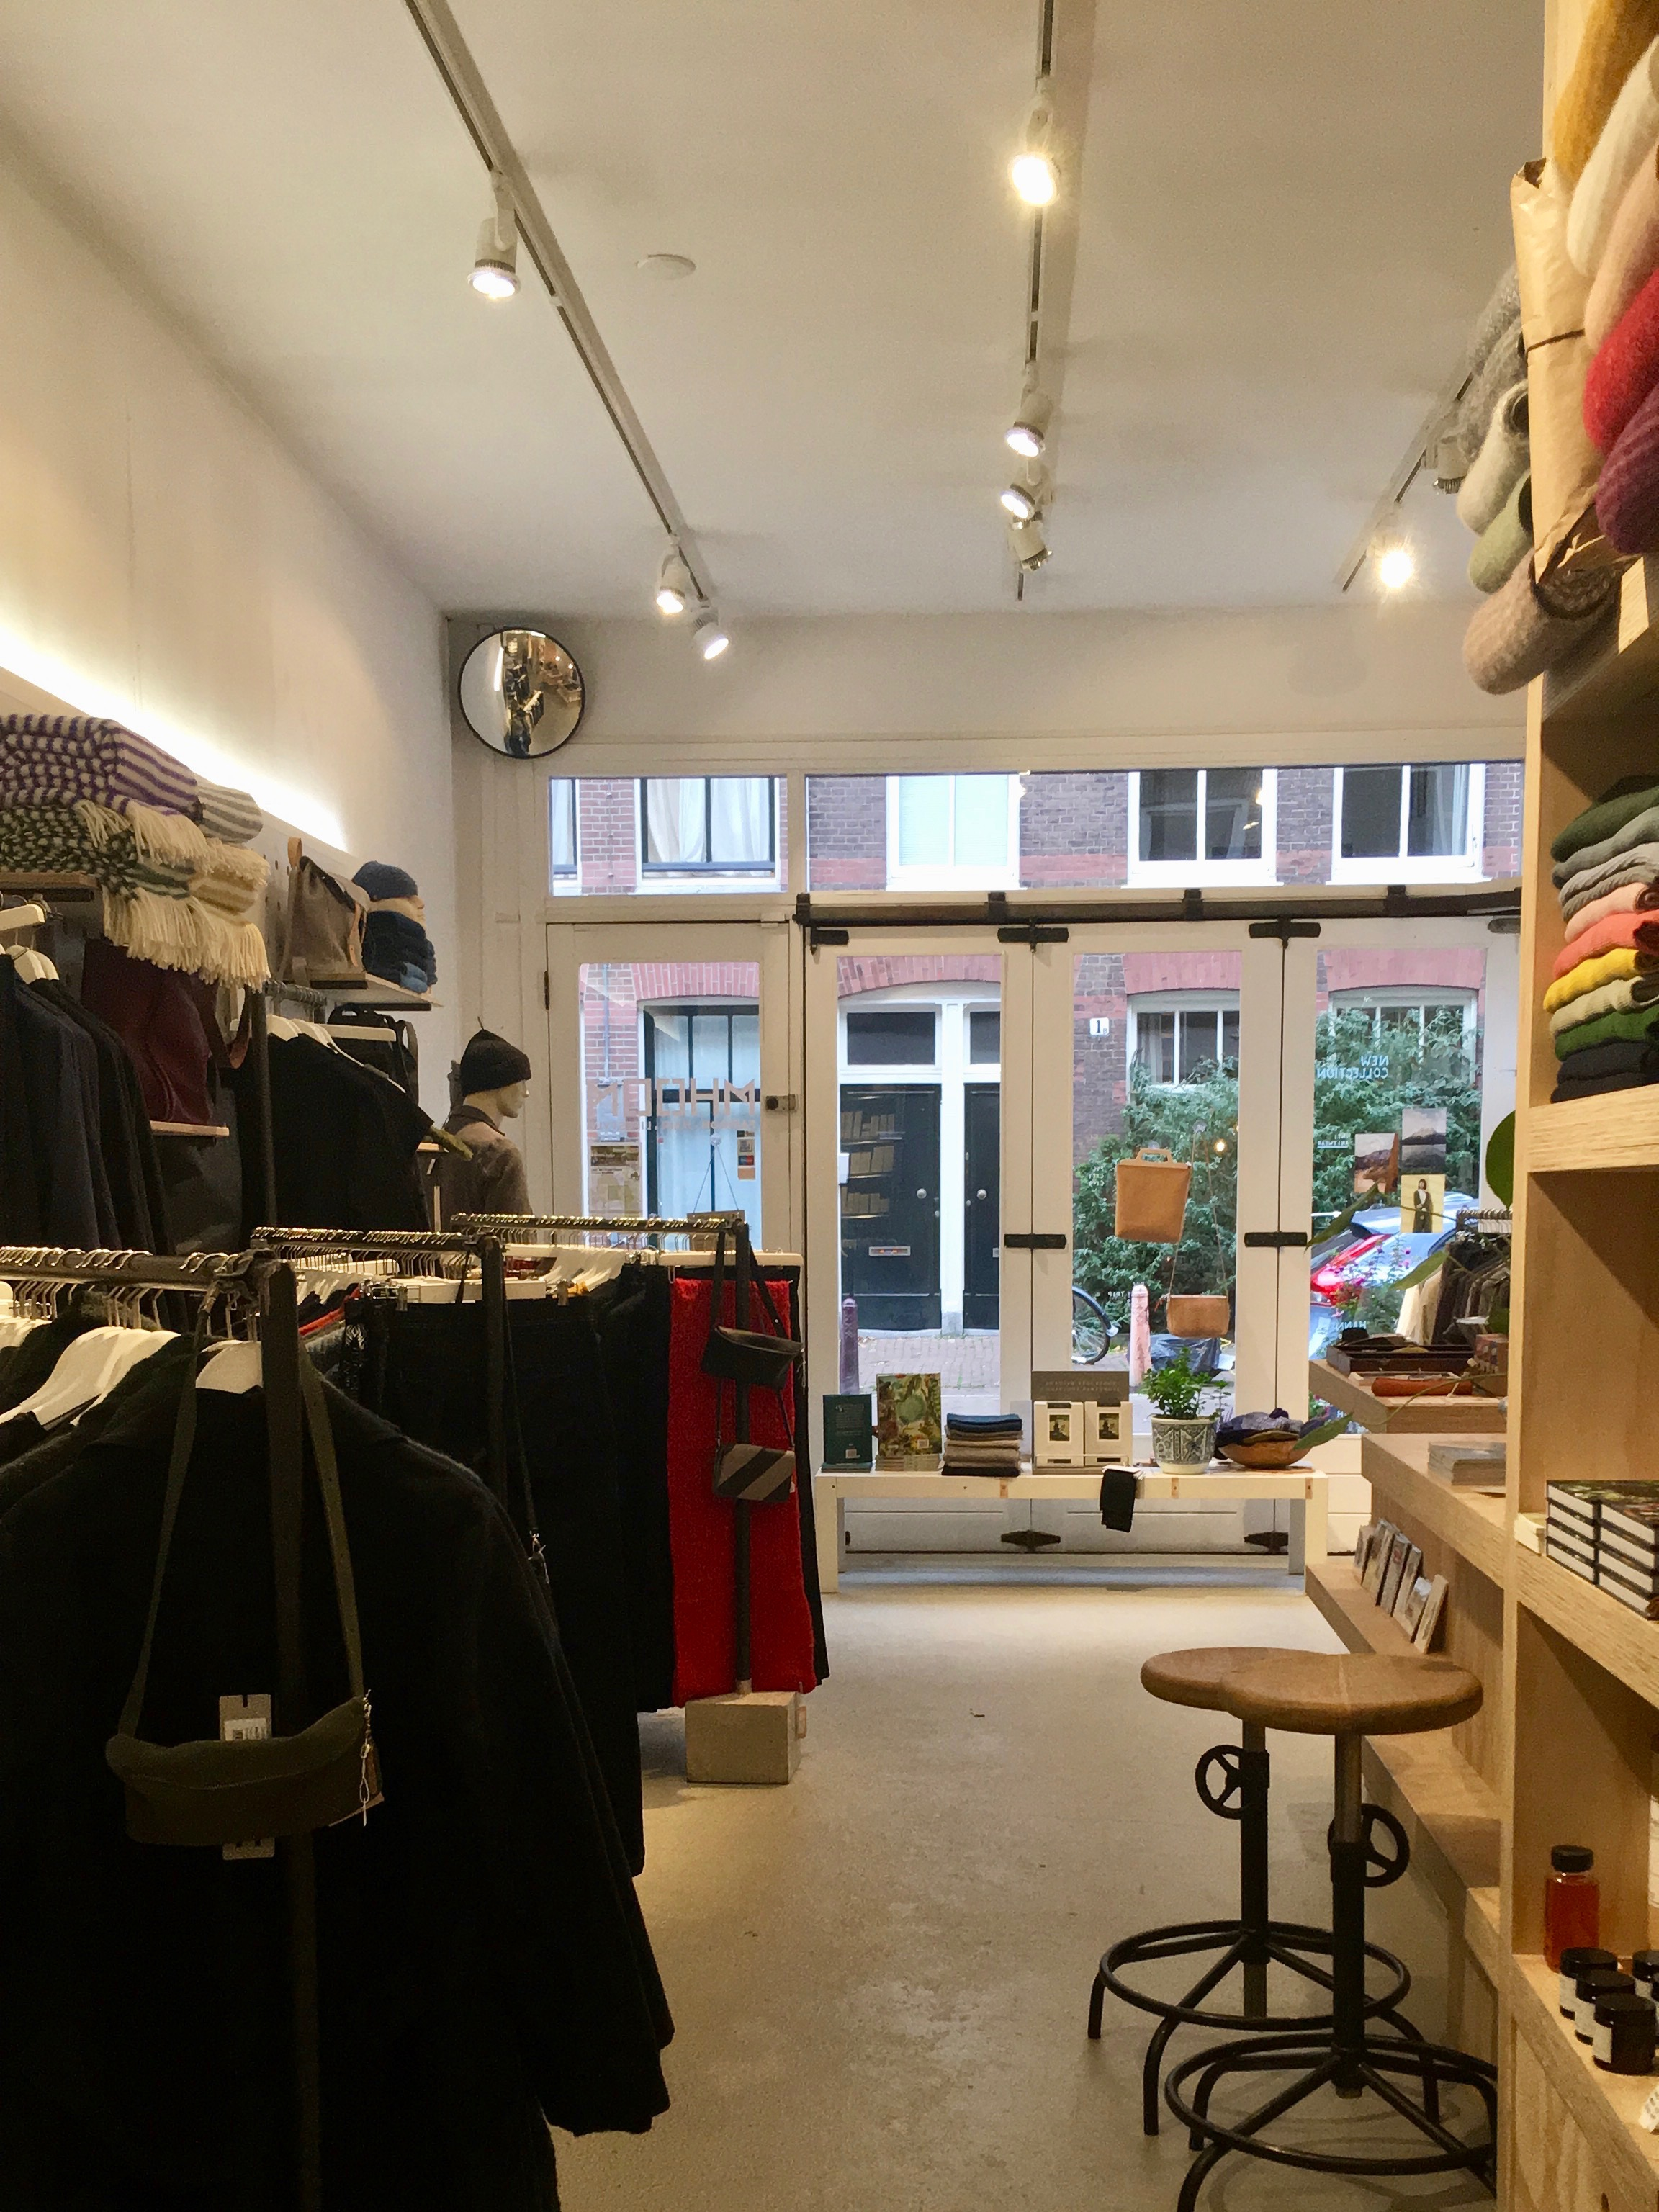 Fair Fashion Stores - Eco Fashion Stores - City Guide to Amsterdam